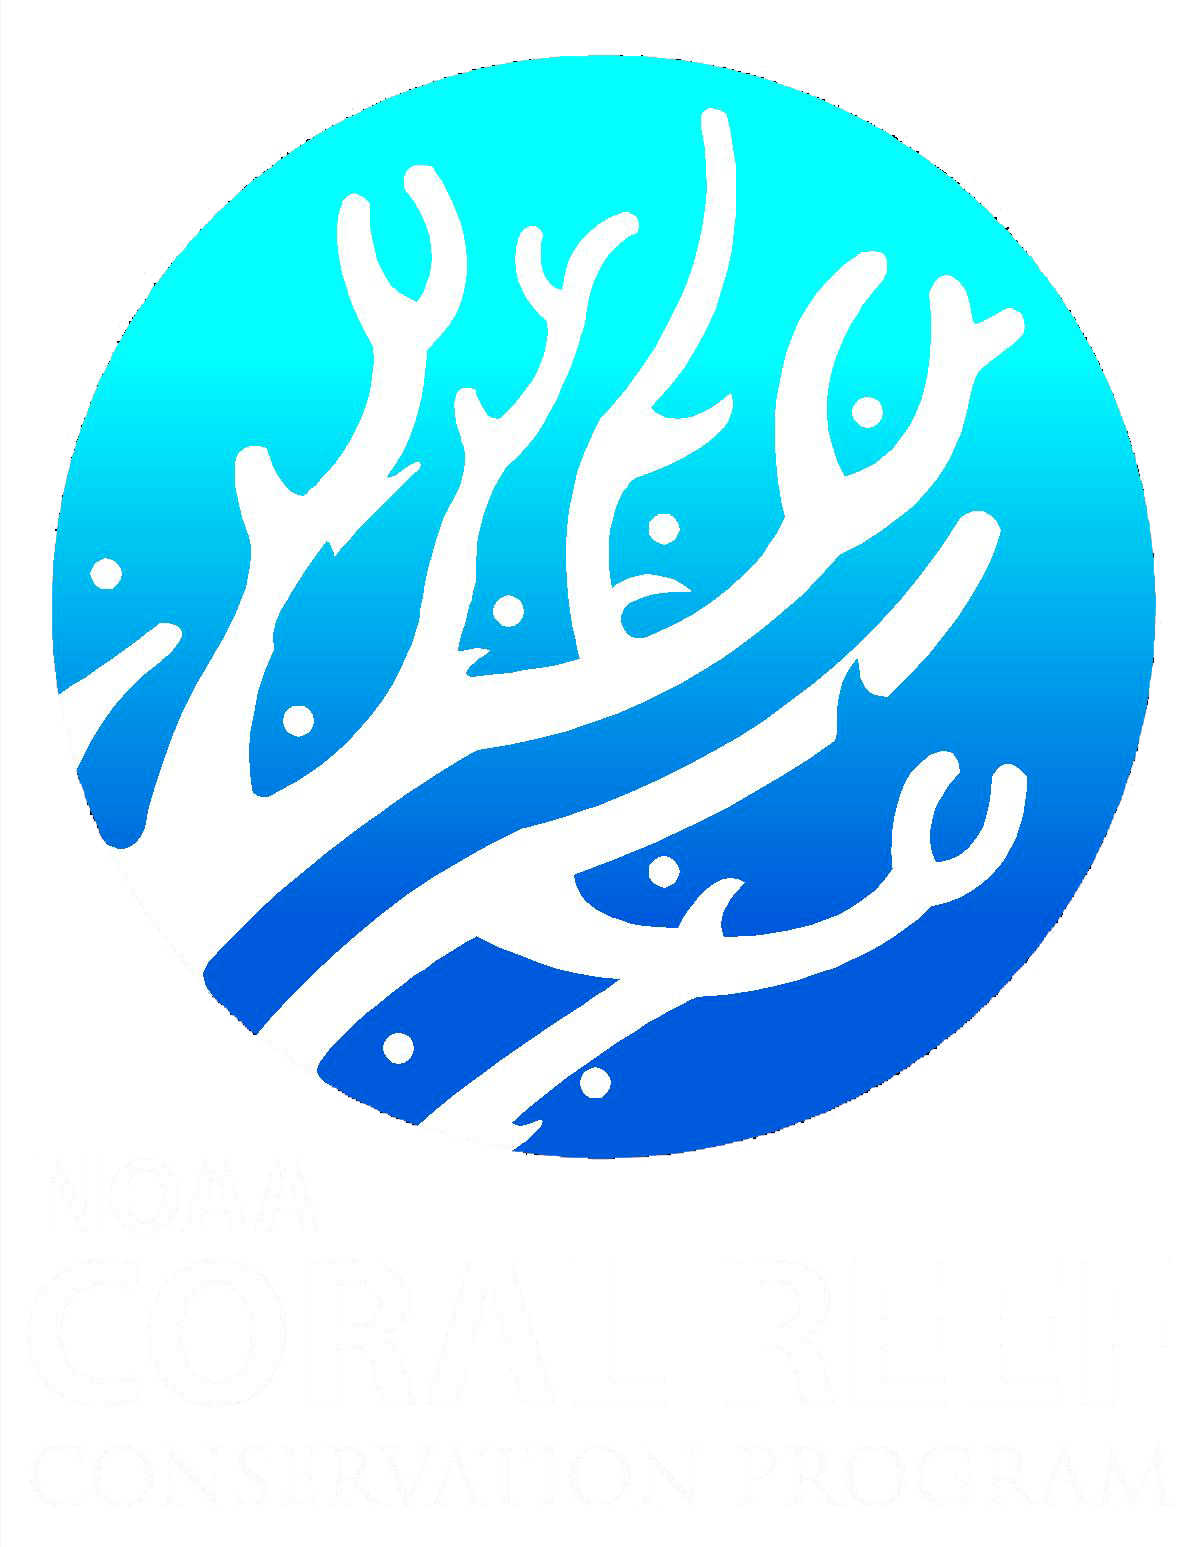 Clipart ocean coral reef ecosystem. Resilience to climate change